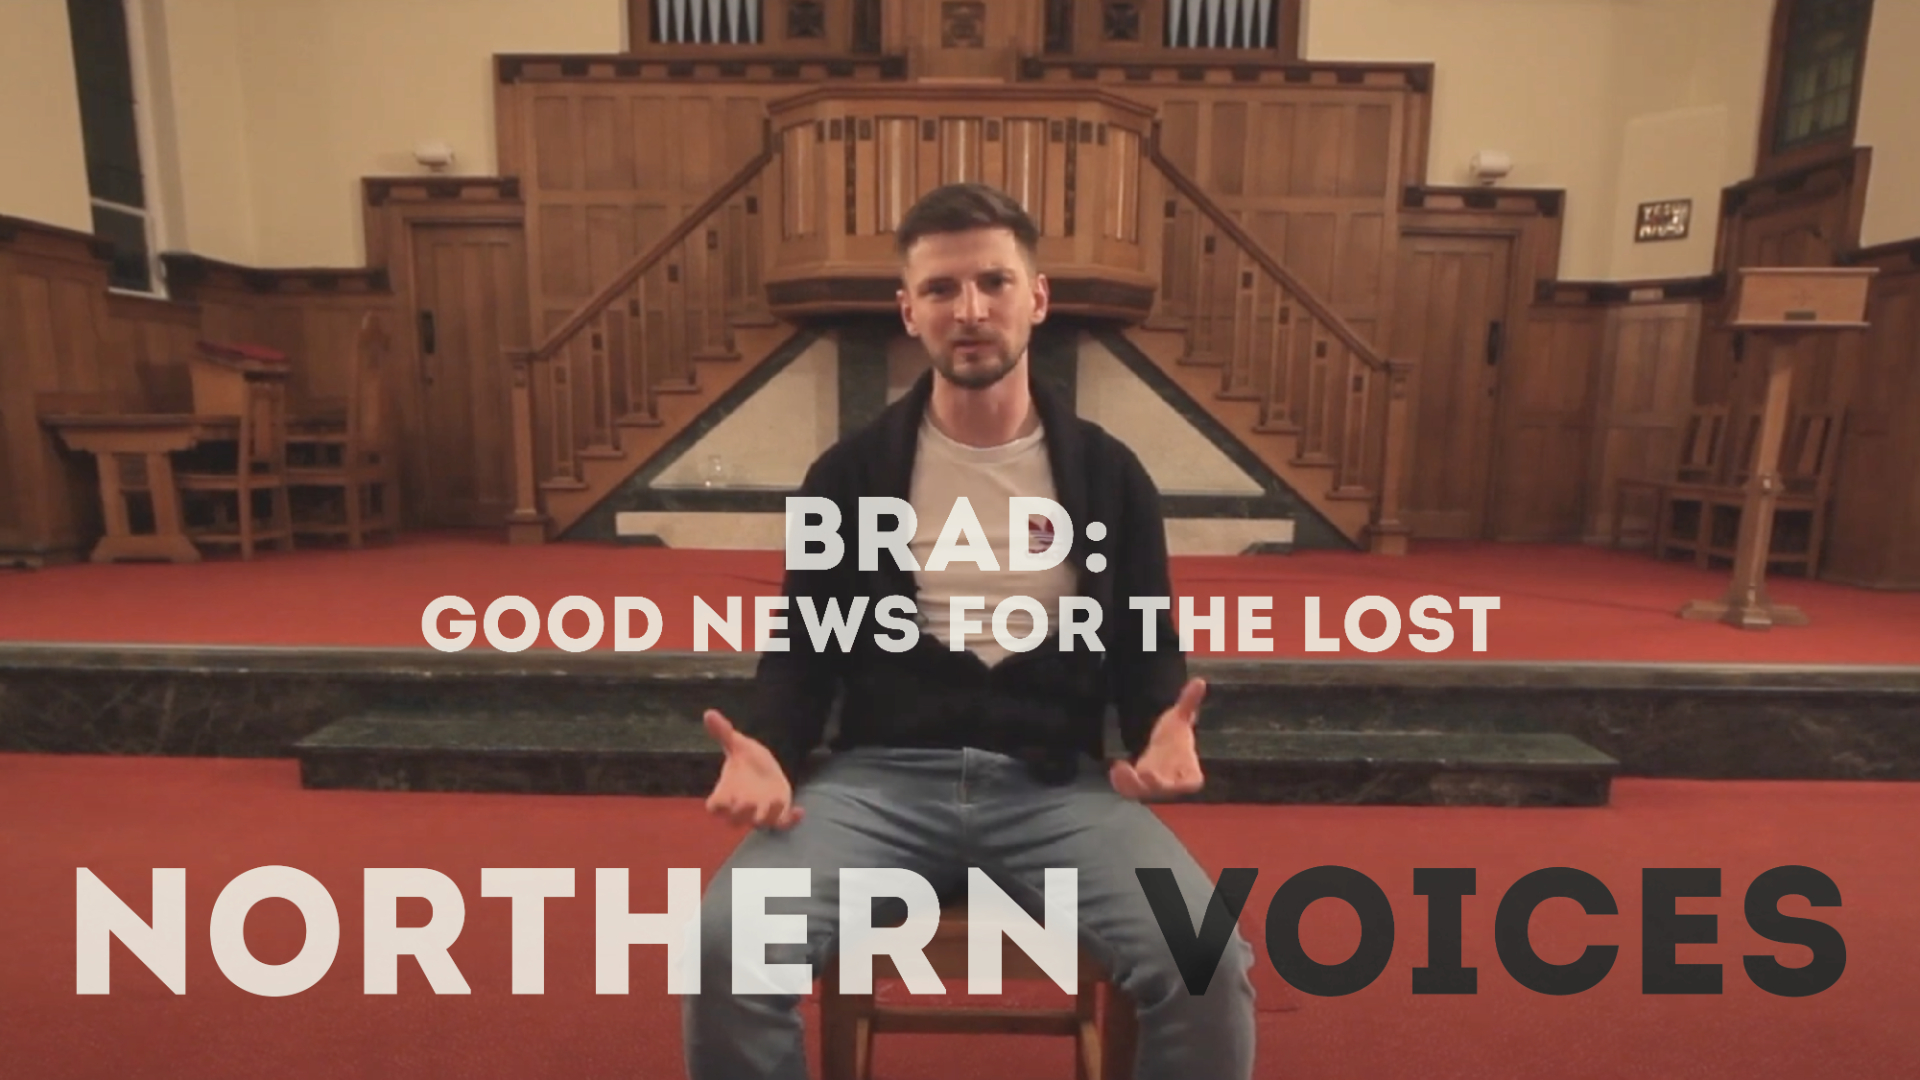 Northern Voices: Good News for the Lost